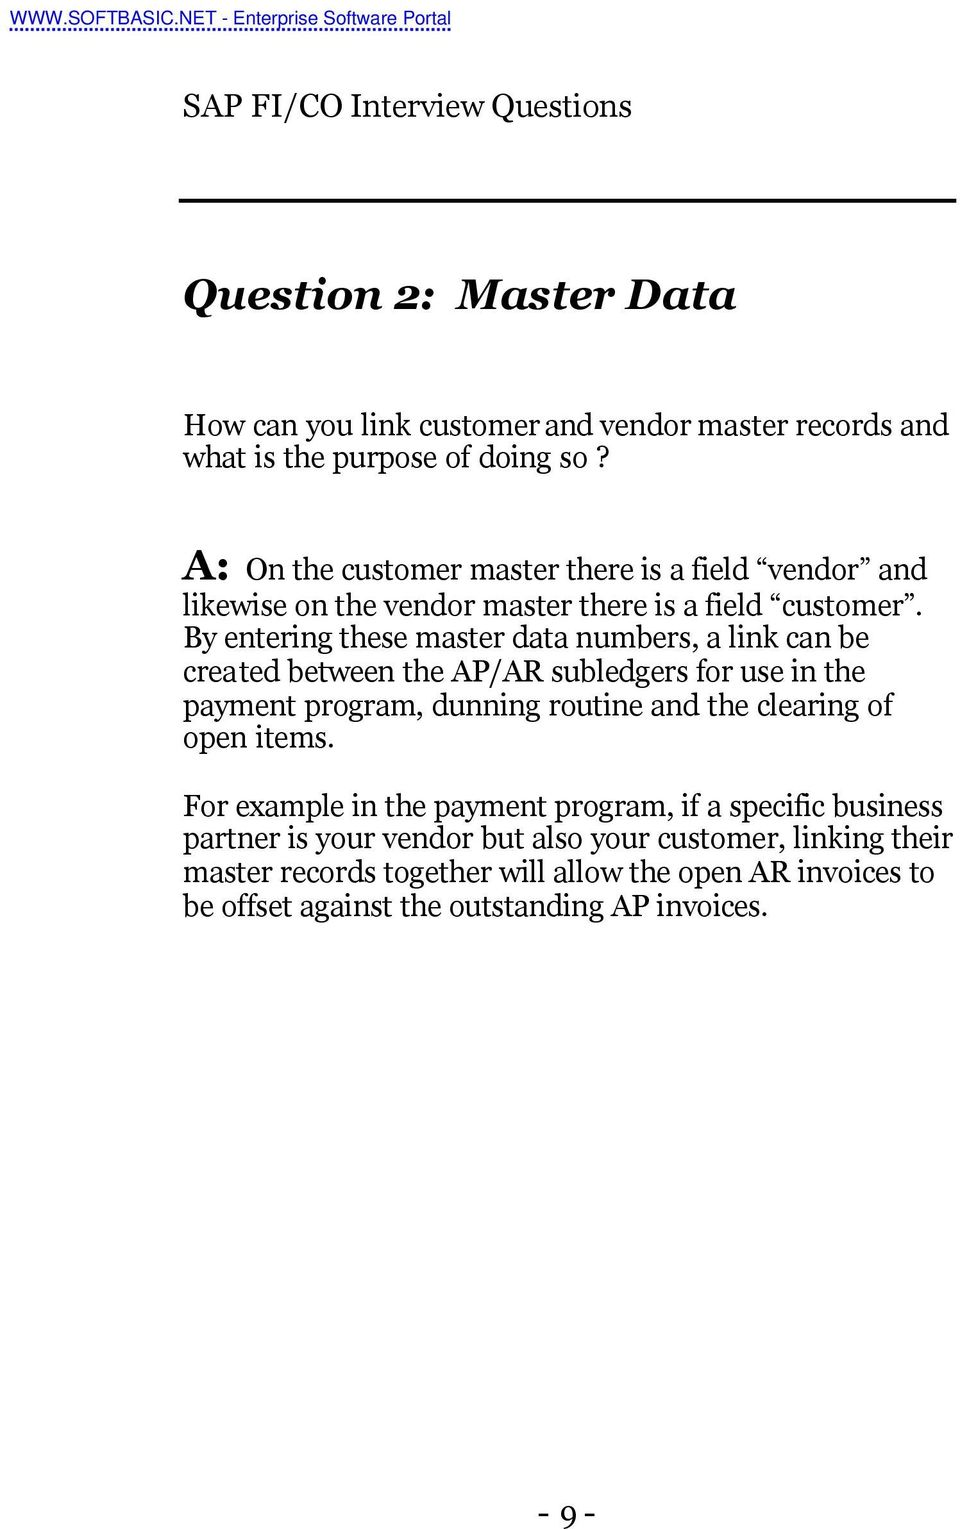 By entering these master data numbers, a link can be created between the AP/AR subledgers for use in the payment program, dunning routine and the clearing